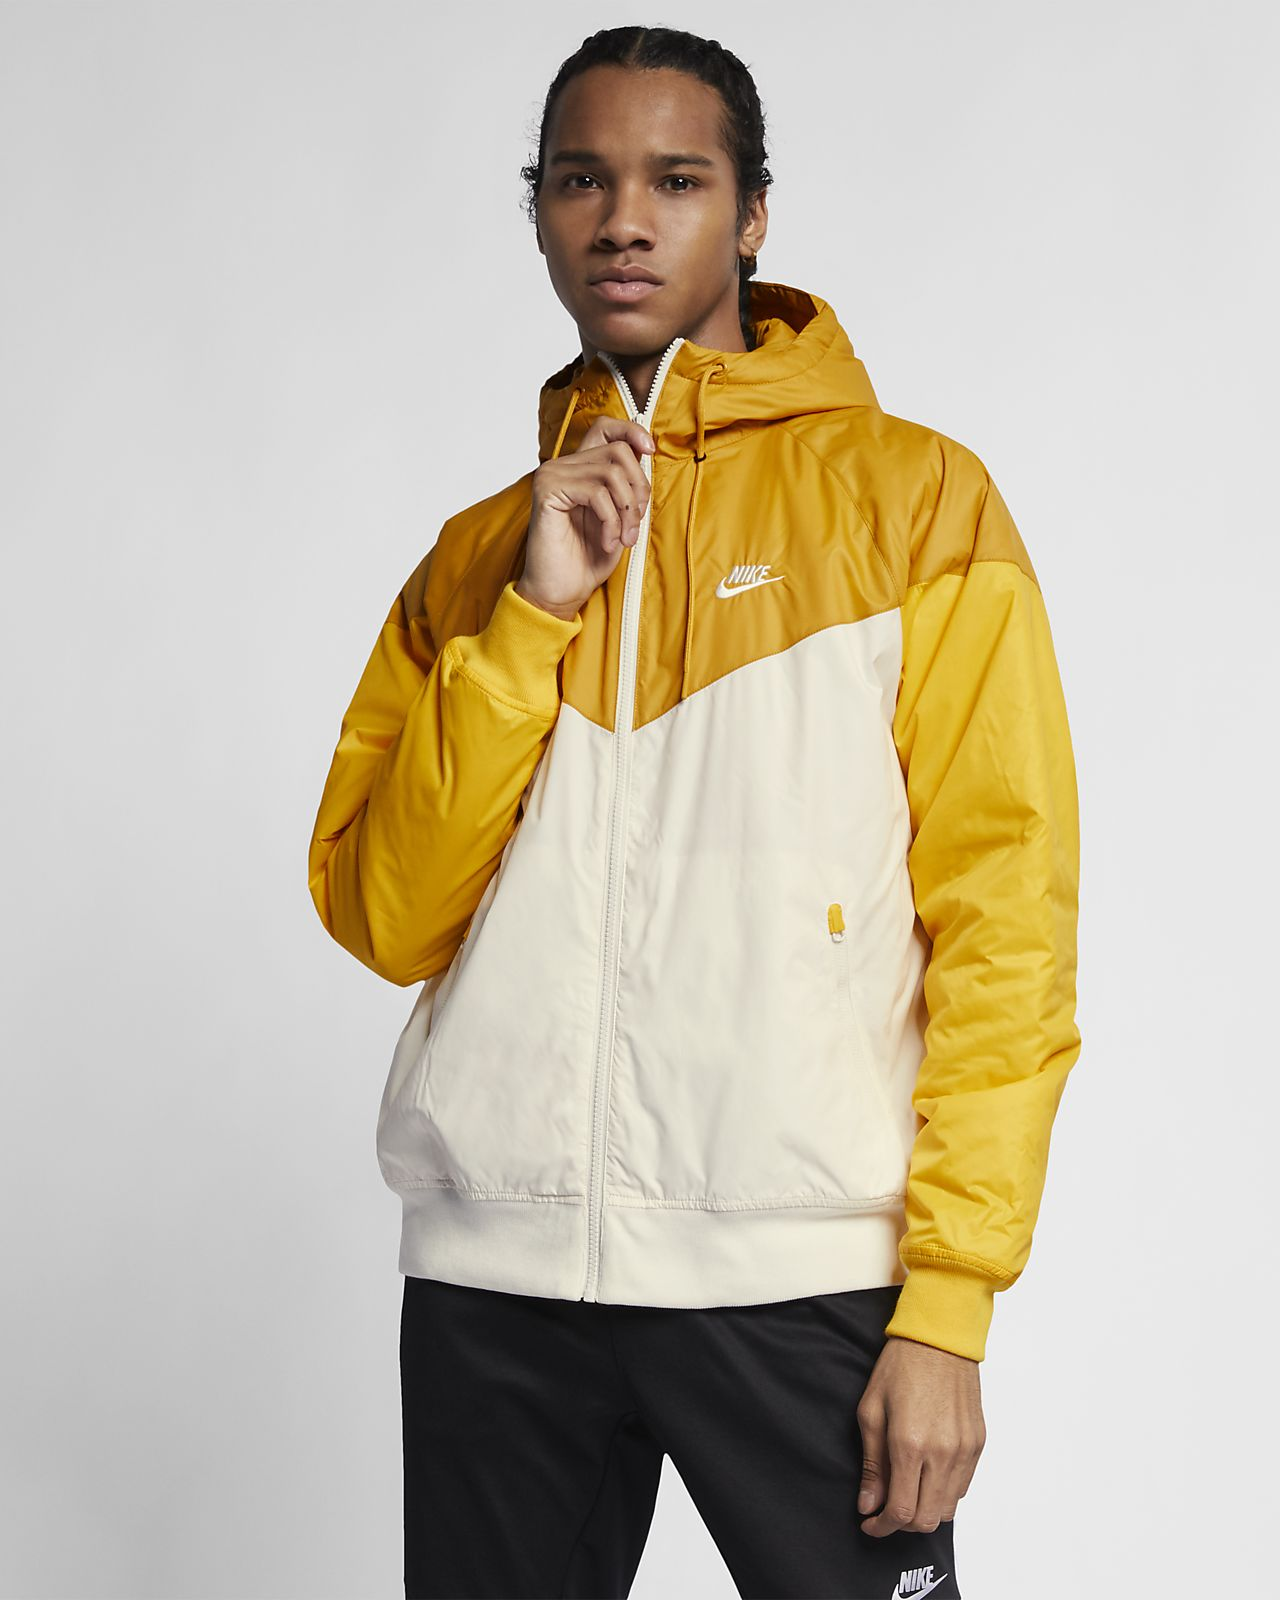 55e1877711 Nike Sportswear Windrunner Men s Hooded Jacket. Nike.com NZ